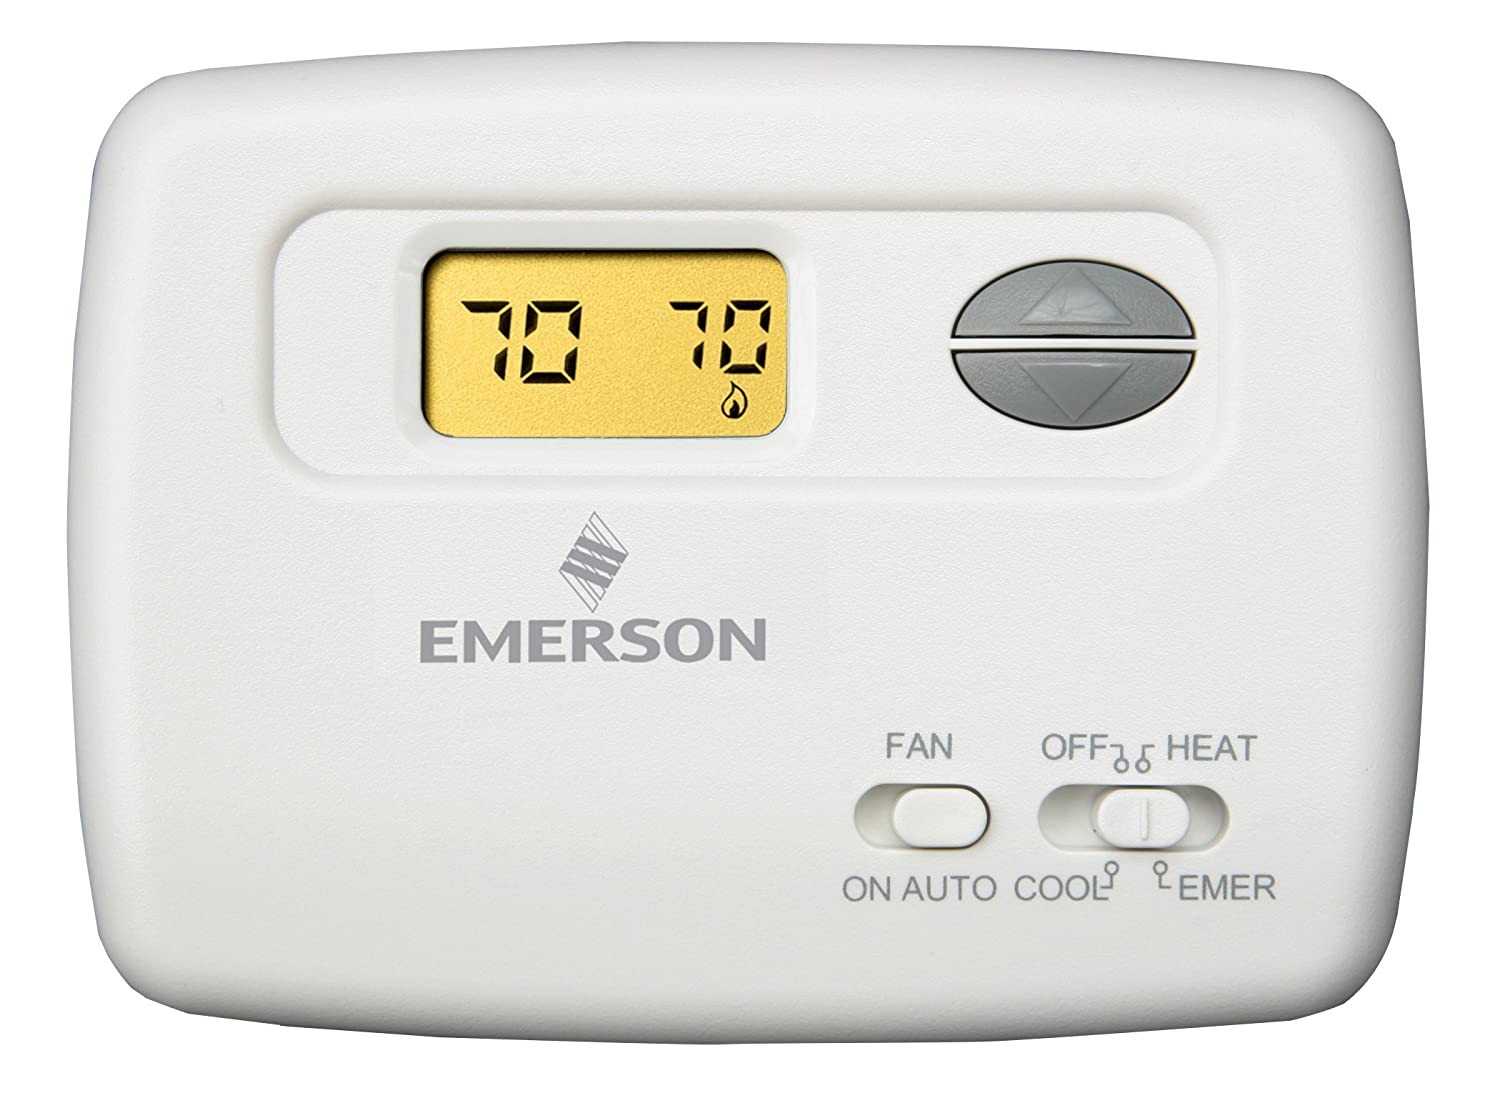 81rAg09UxyL._SL1500_ emerson 1f79 111 comfort set thermostat programmable household white rodgers np100 thermostat wiring diagram at creativeand.co